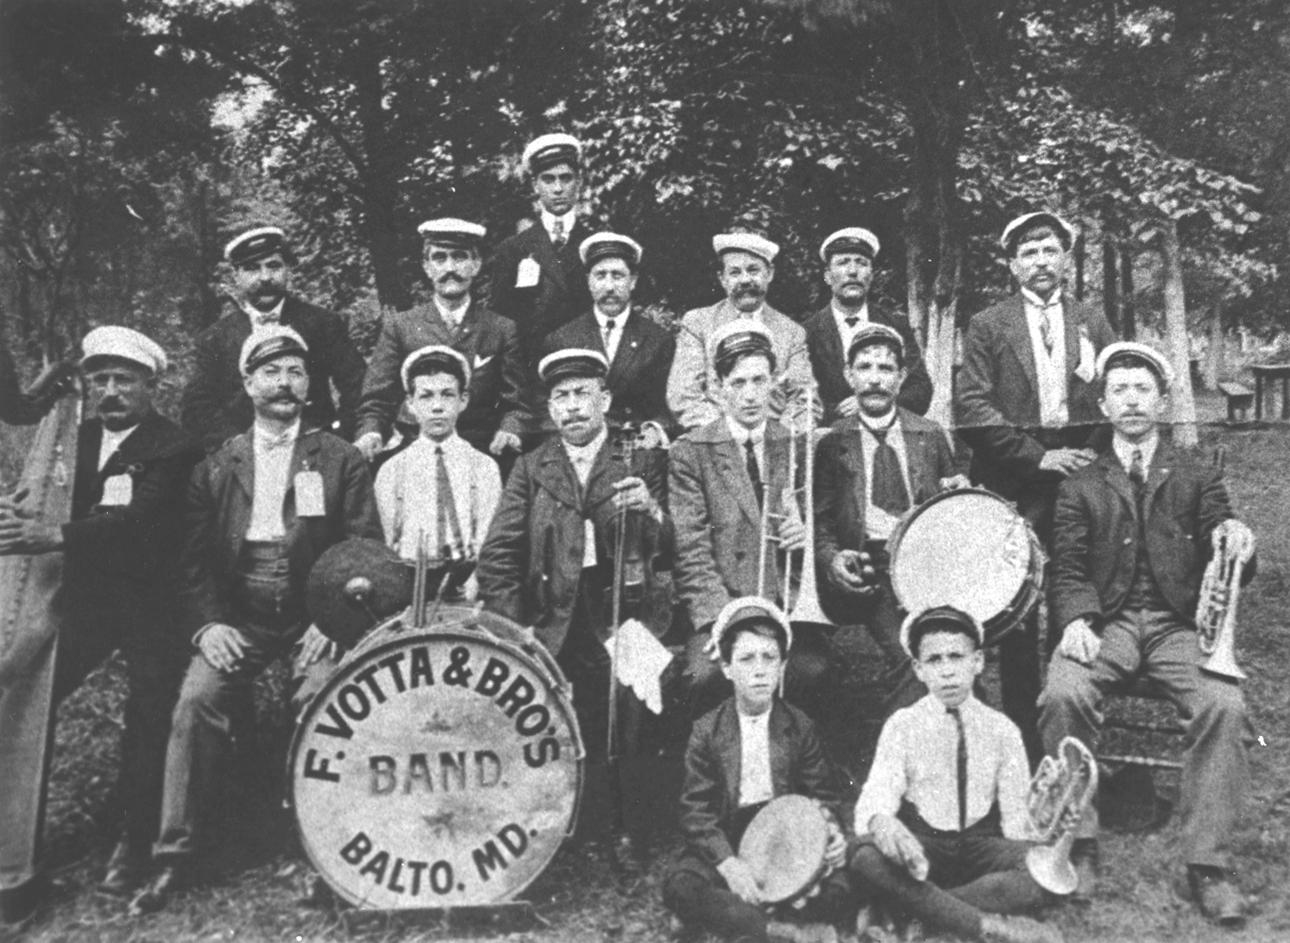 A group picture of the Frank Votta Band, c. 1904-1905. Joseph Pente is seated in the second row, far right holding a trumpet. His younger brother Nicholas is seated on the floor holding a tambourine.